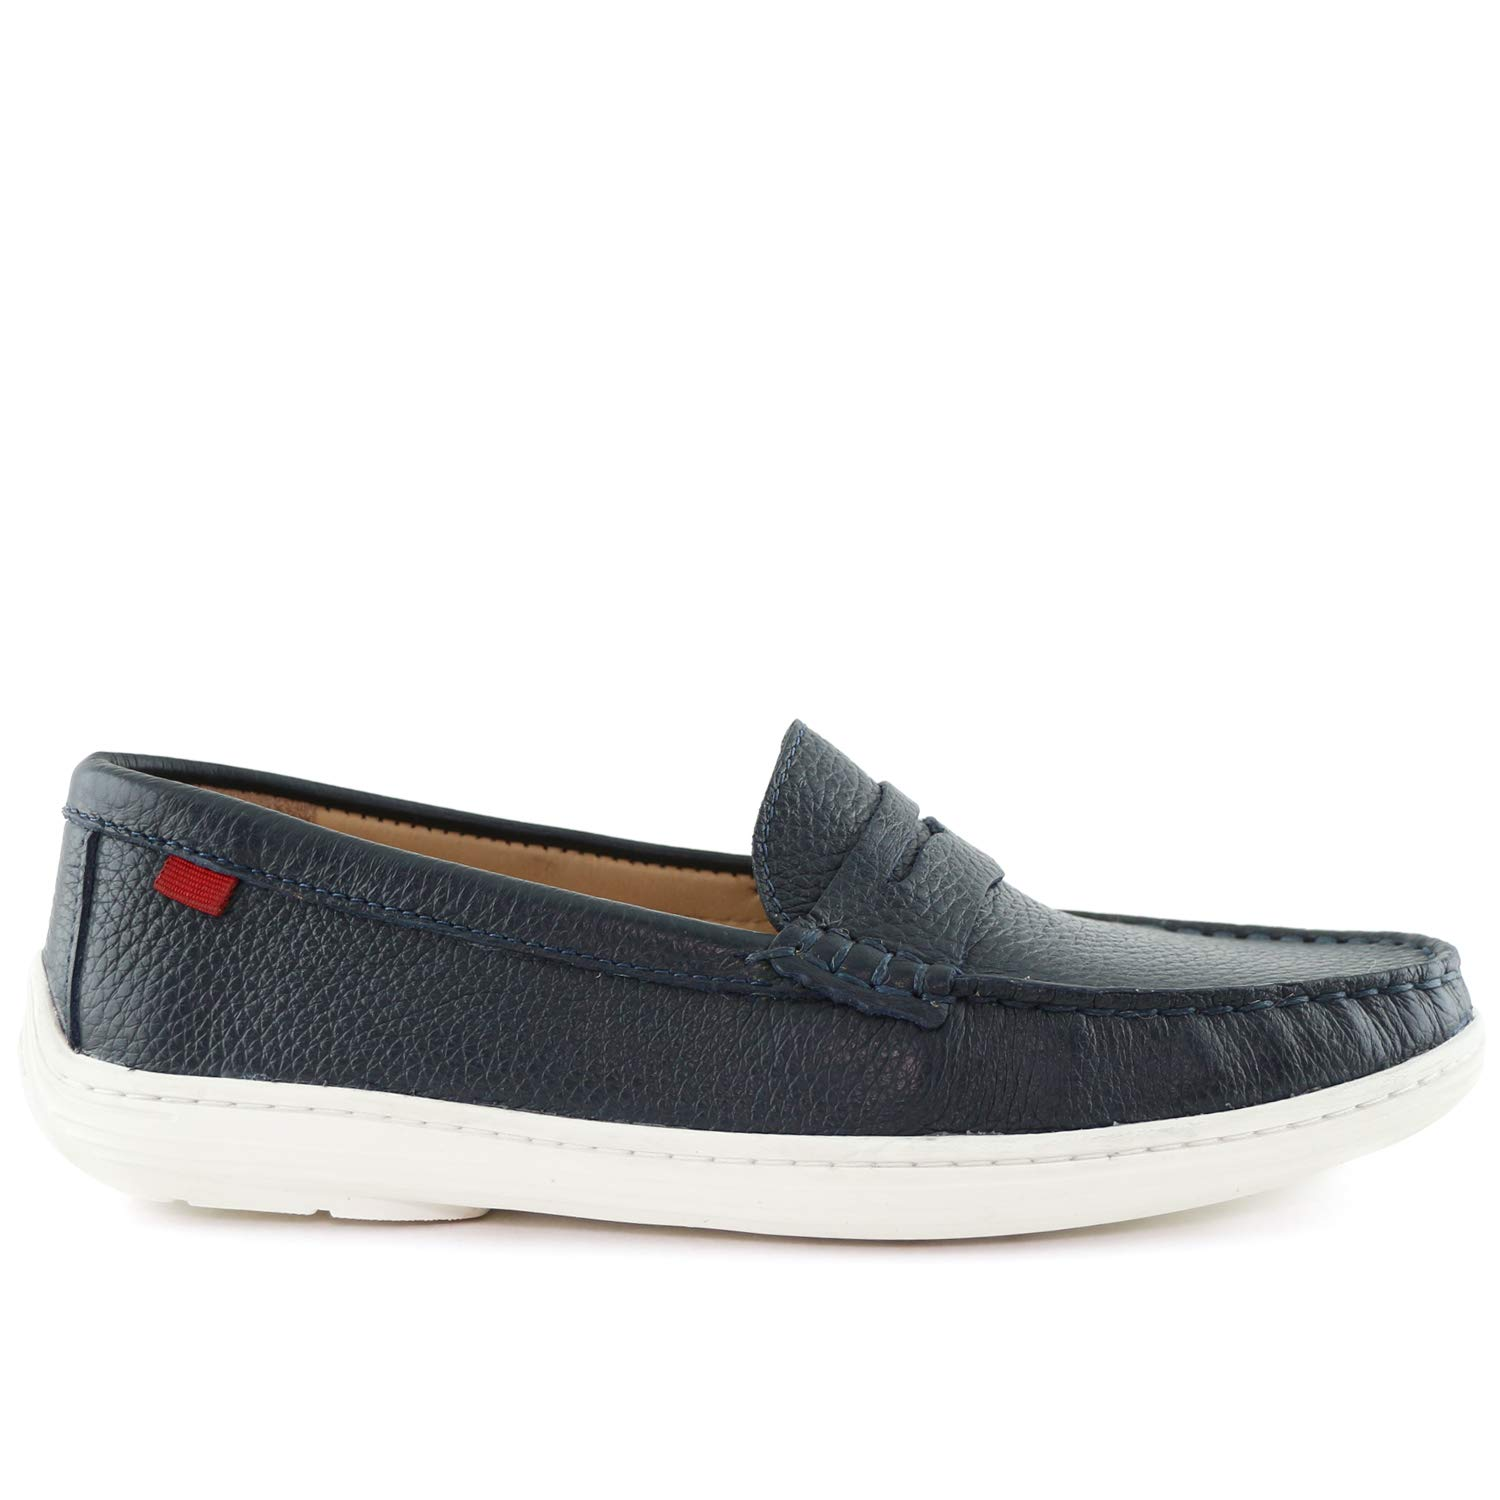 MARC JOSEPH NEW YORK Kids Boys/Girls Casual Comfort Slip On Penny Loafer Navy Grainy 5.5 by MARC JOSEPH NEW YORK (Image #5)